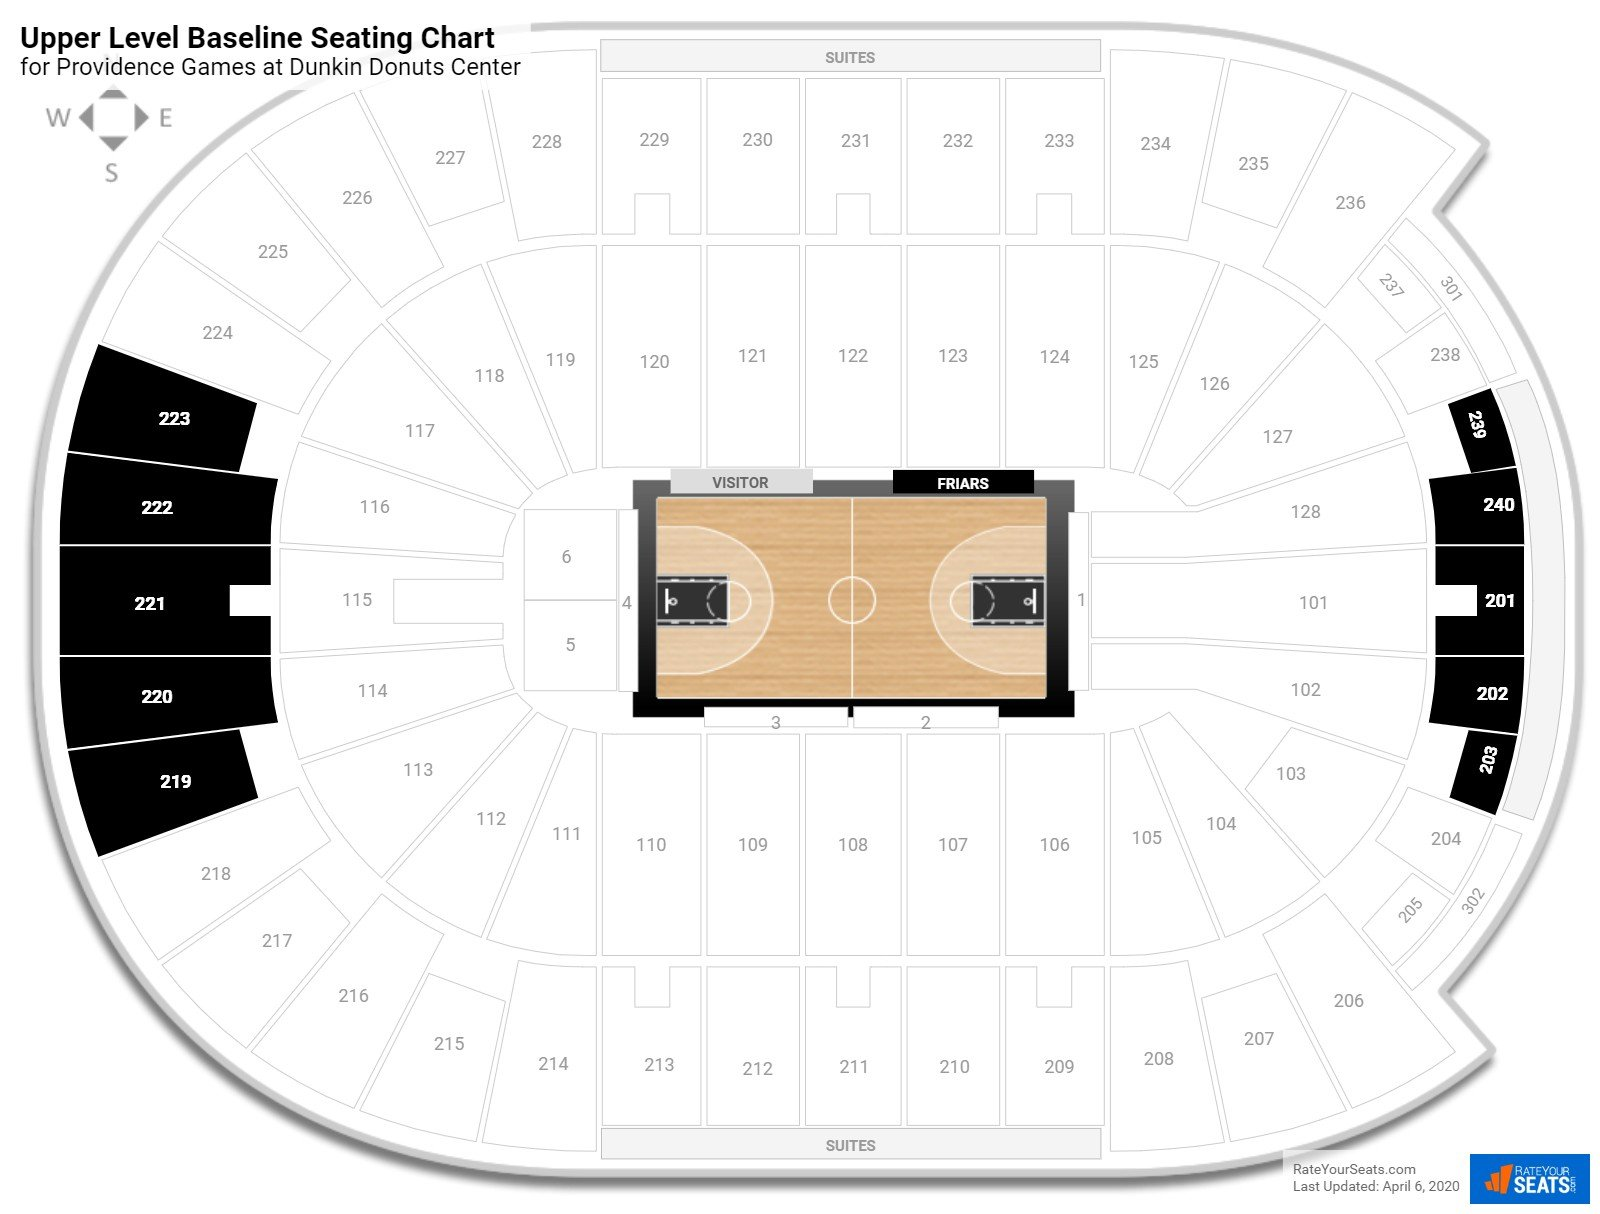 Dunkin Donuts Center Upper Level Baseline seating chart